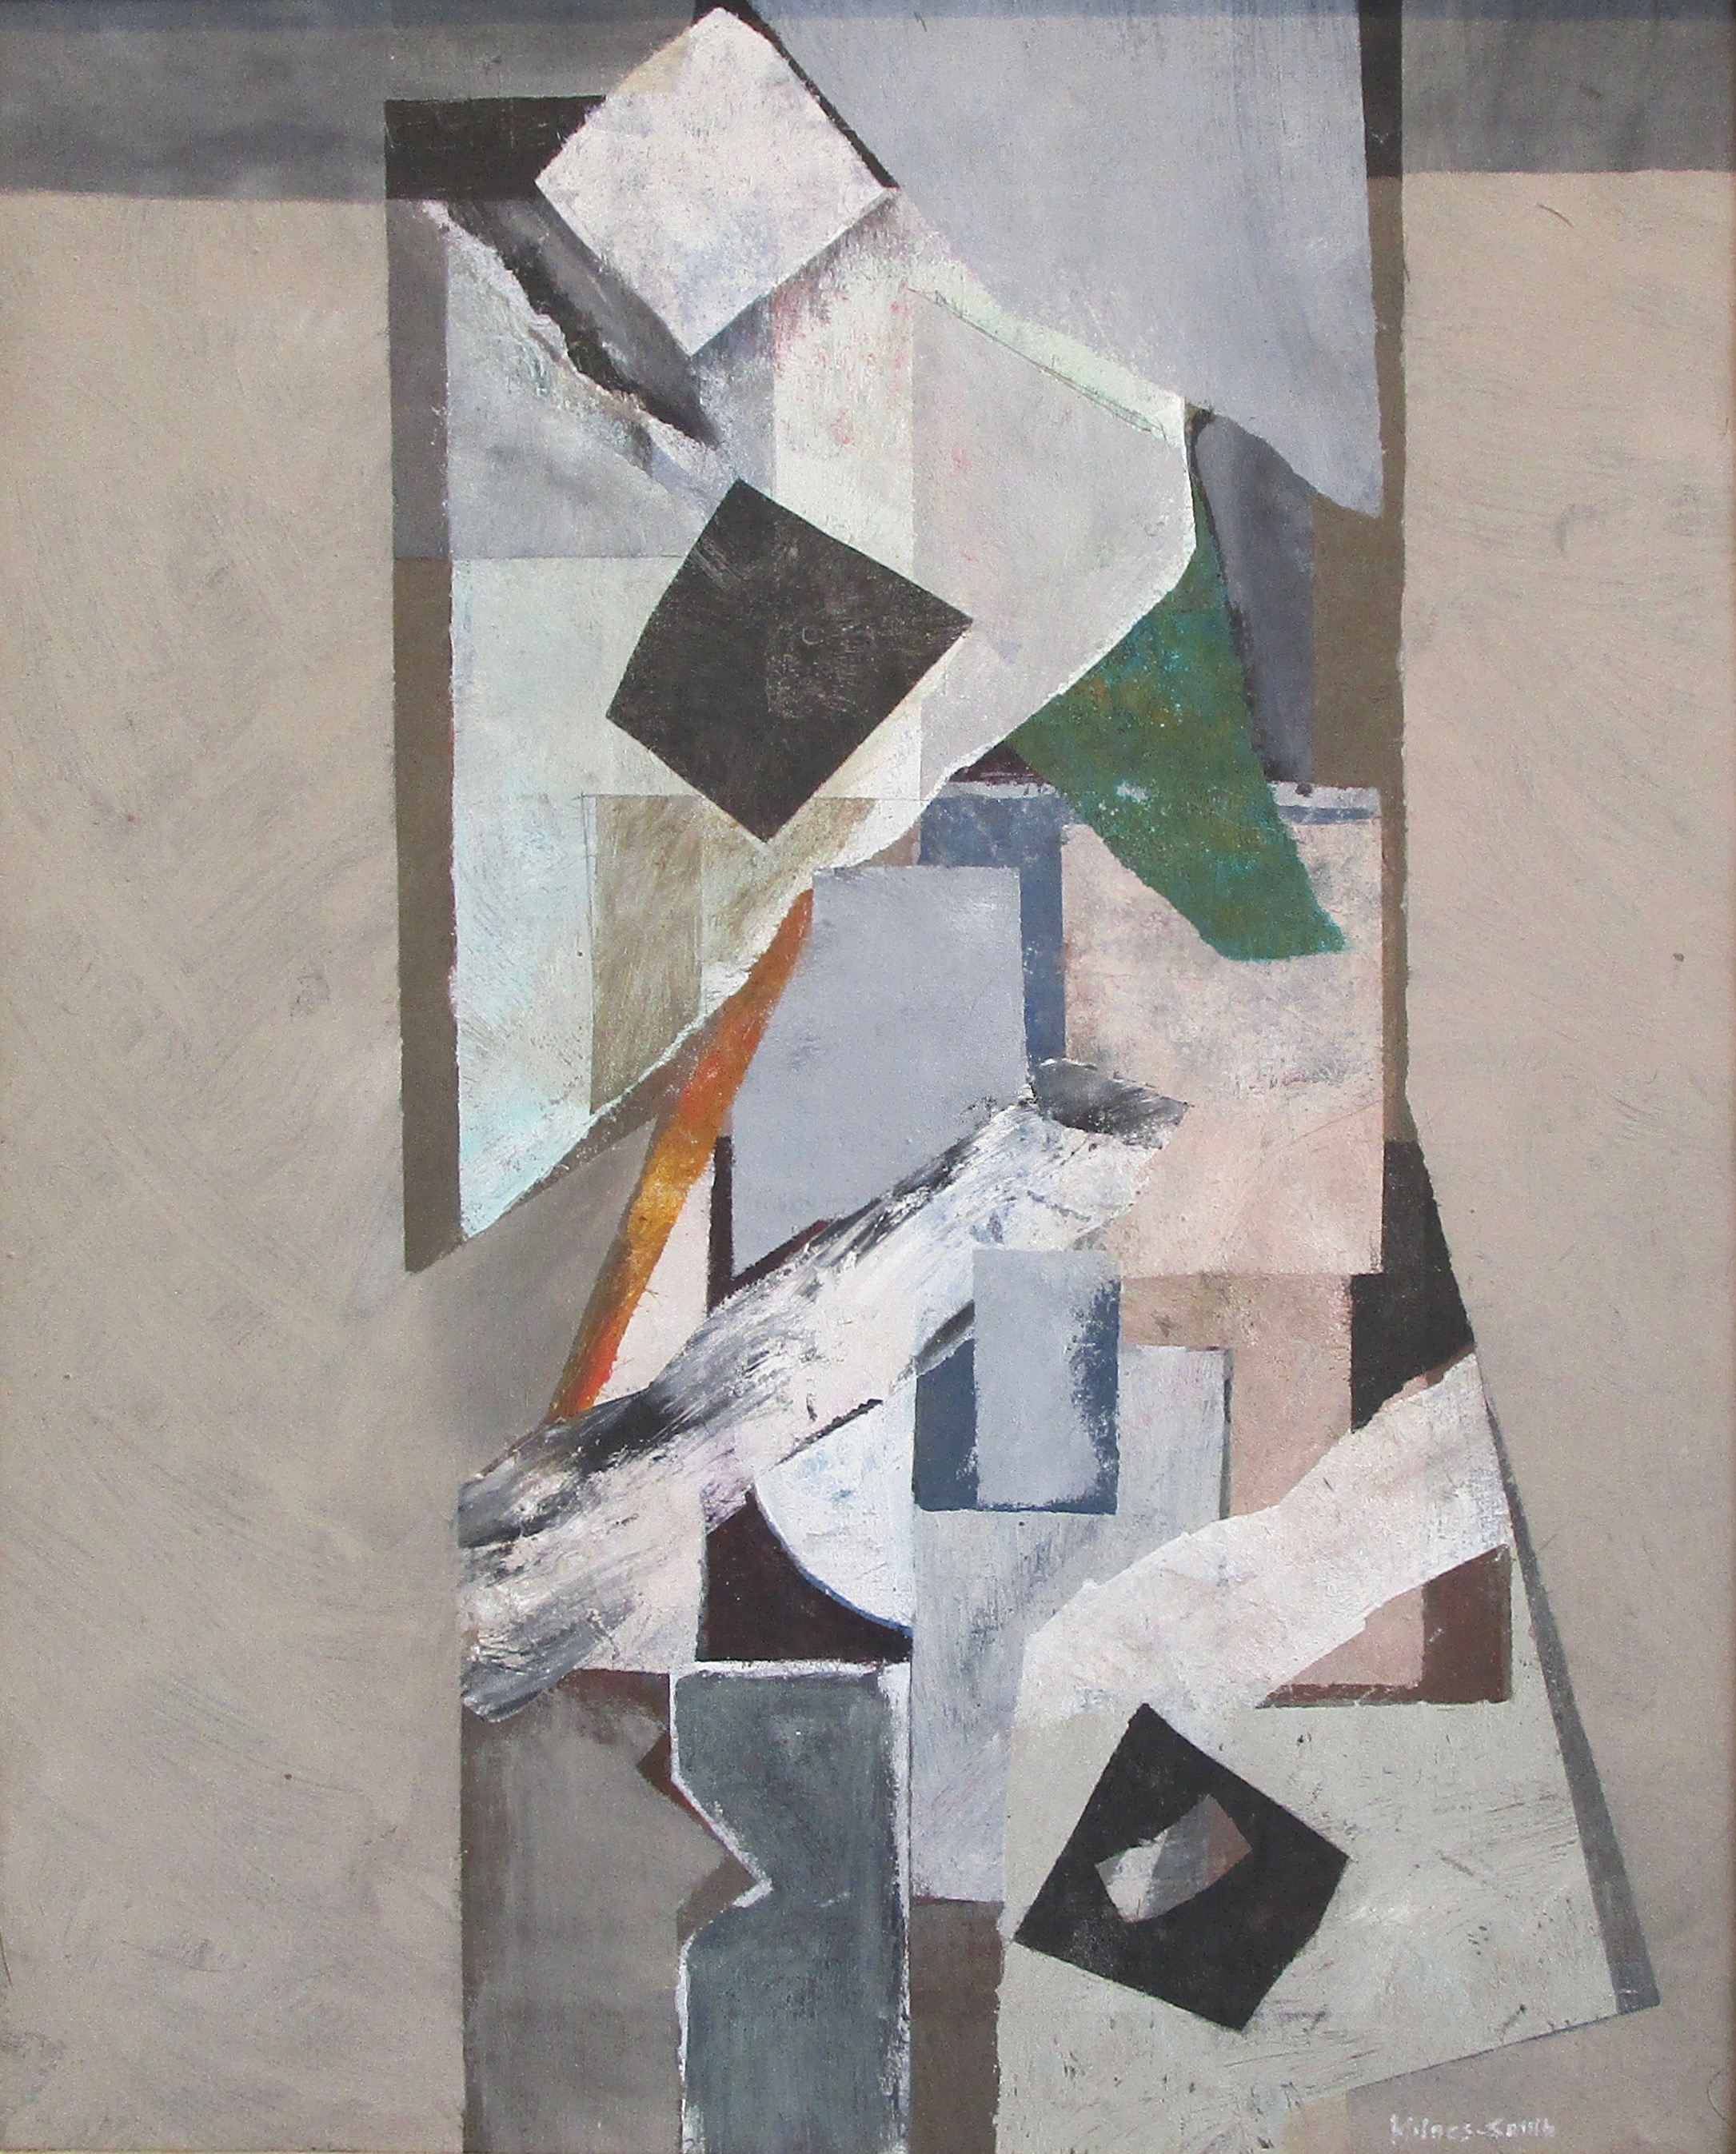 JOHN MILNES-SMITH [1912-1998]. Centre Piece, 1986. Oil on canvas. Signed lower right, titled and